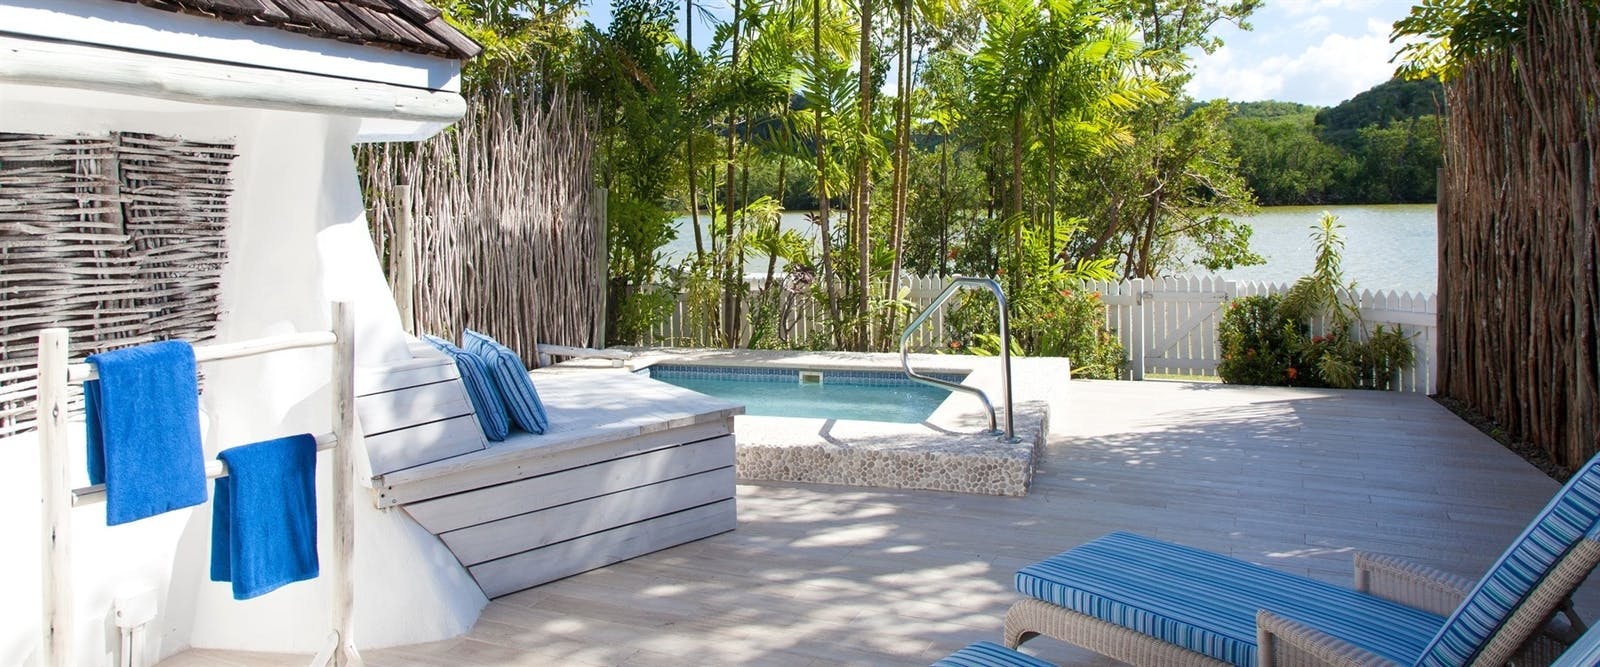 Gauguin Suite Pool at Galley Bay Resort & Spa, Antigua